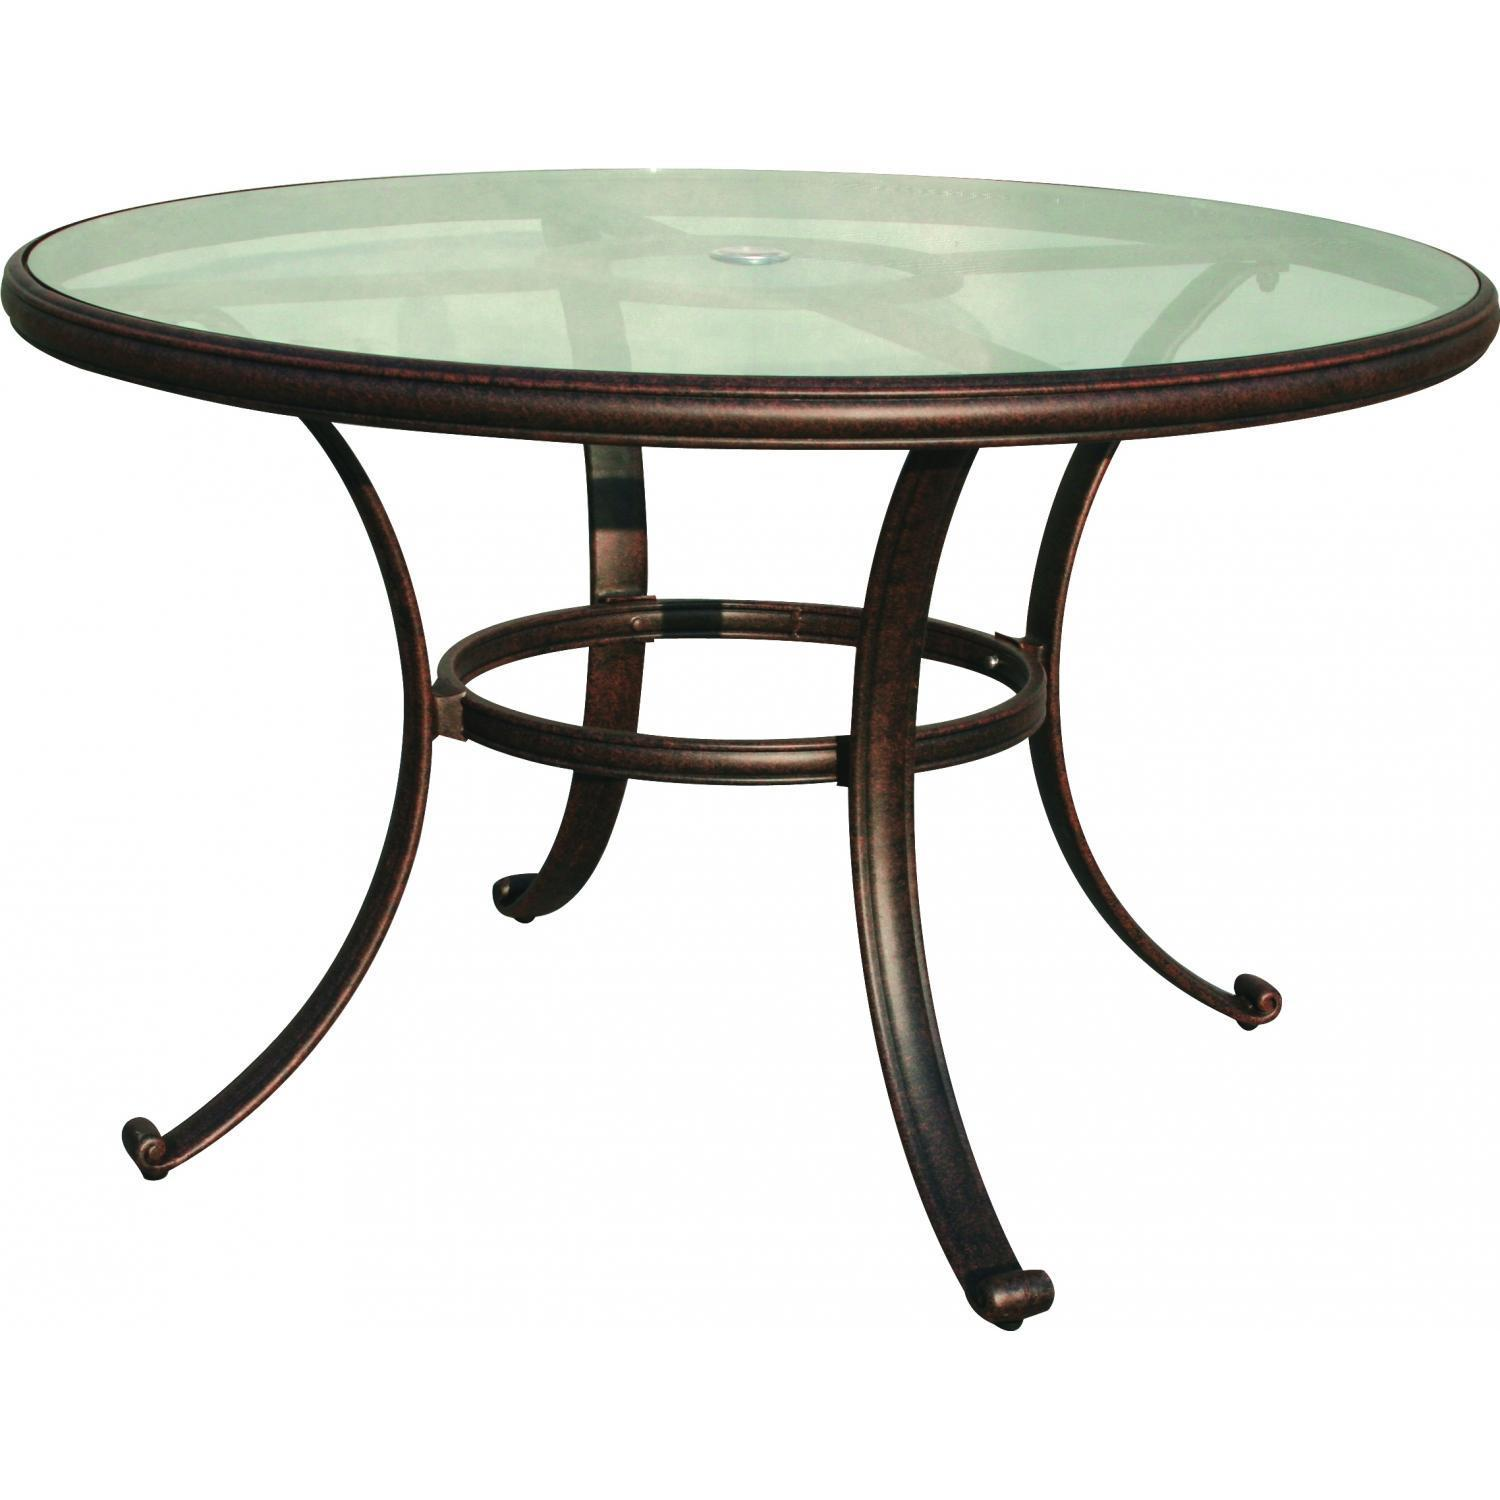 patio dining table glass top photo - 1